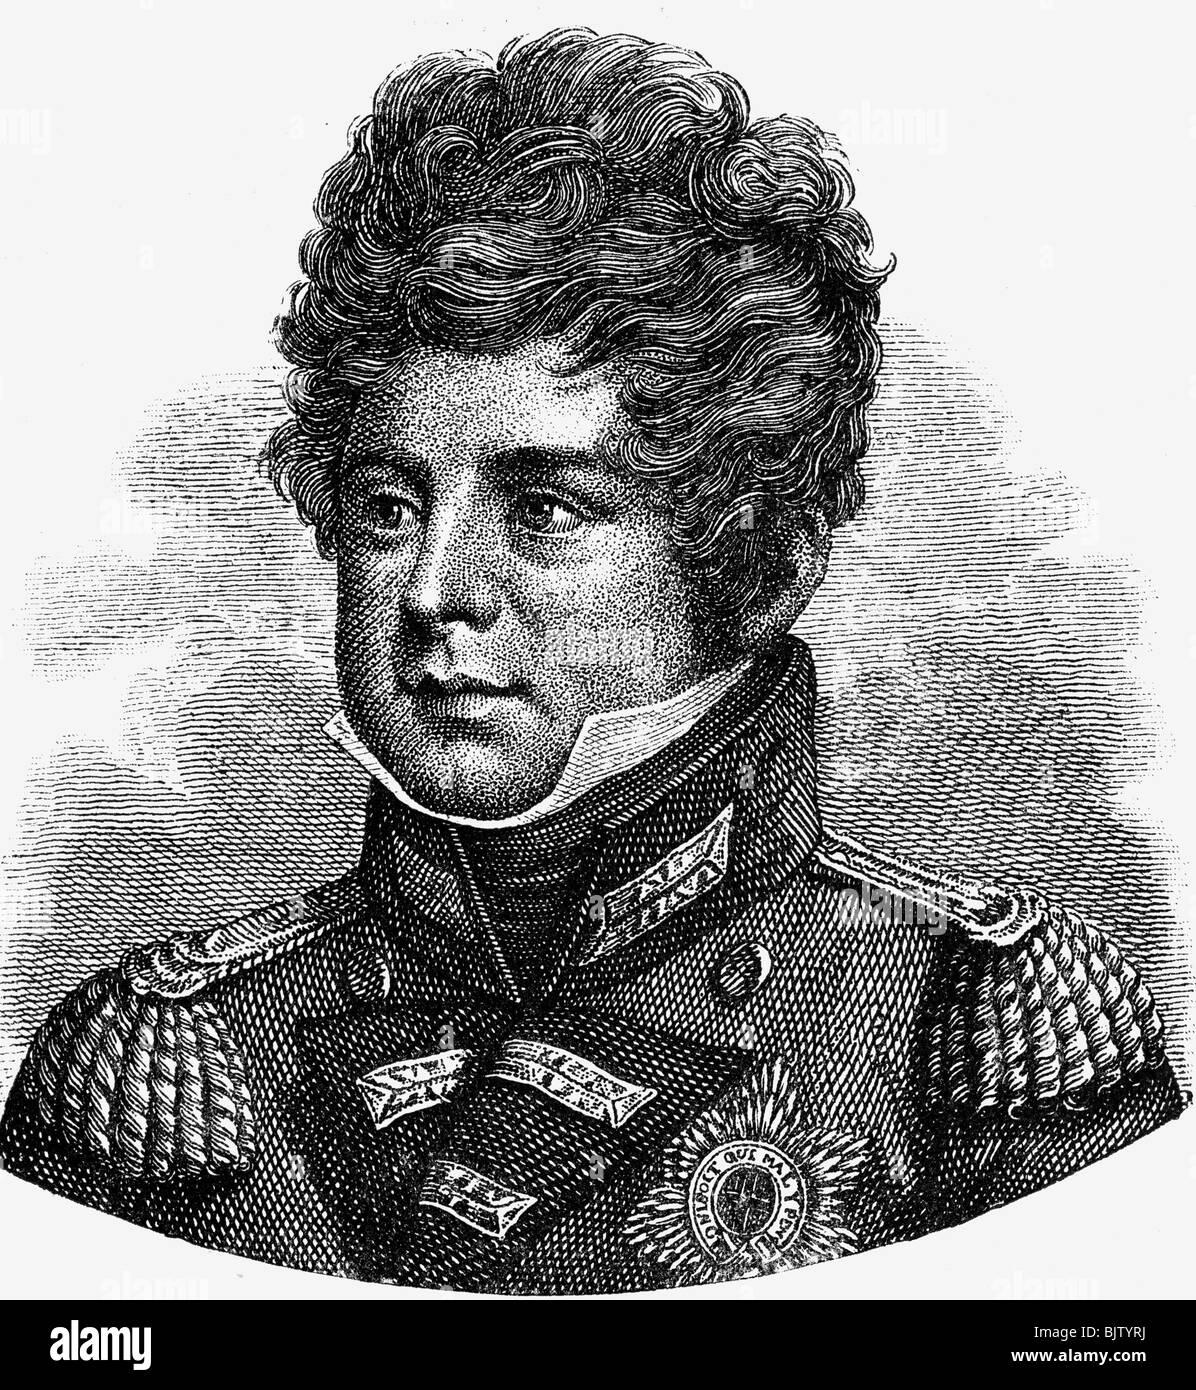 George IV, 12.8.1762 - 26.6.1830, King of Great Britain 29.1.1820 - 26.6.1830, portrait, wood engraving, 19th century, - Stock Image